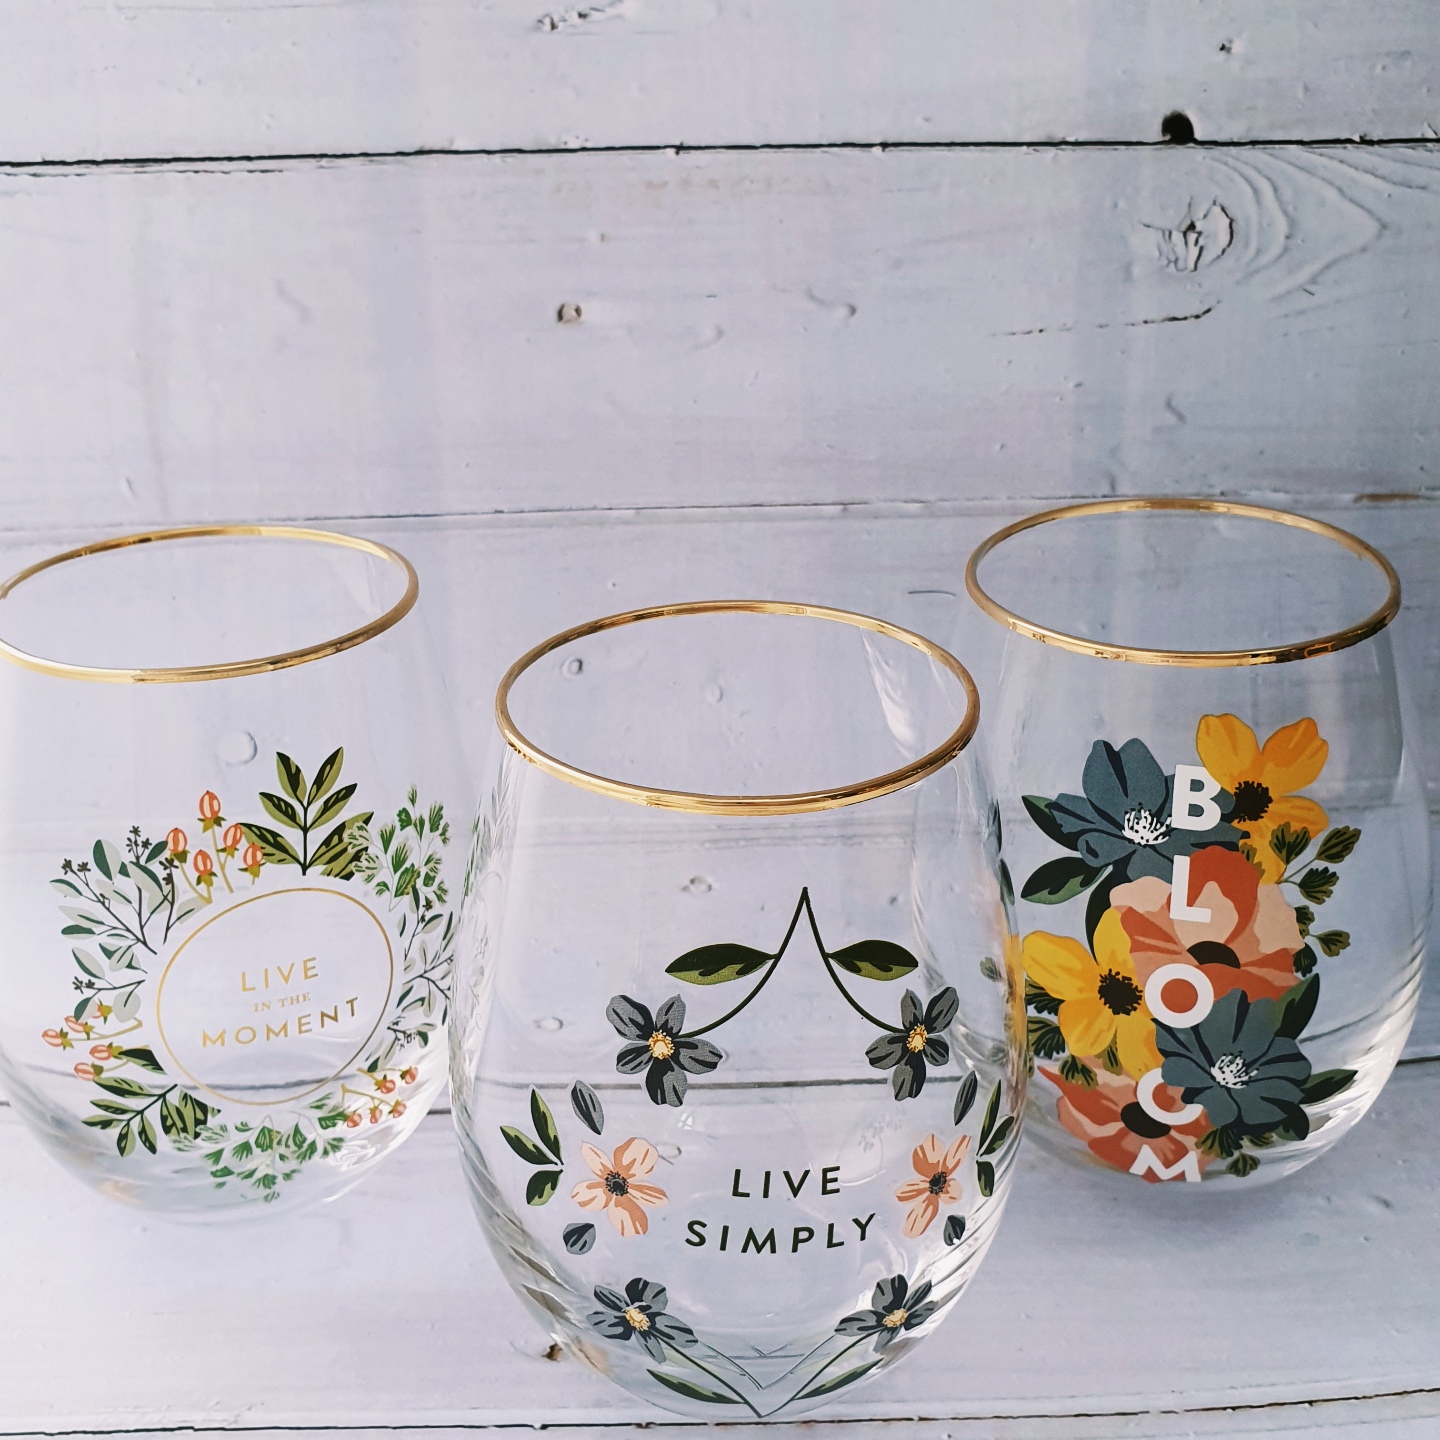 Three stemless wine glasses with gold rim. The wine glass on the left says  Live in the moment and is decorated by a pink and blue floral wreath. The wine glass in the middle says  Live Simply and is decorated by pink and blue flowers. The wine glass on the right says Bloom and is decorated with huge yellow, blue and red flowers.